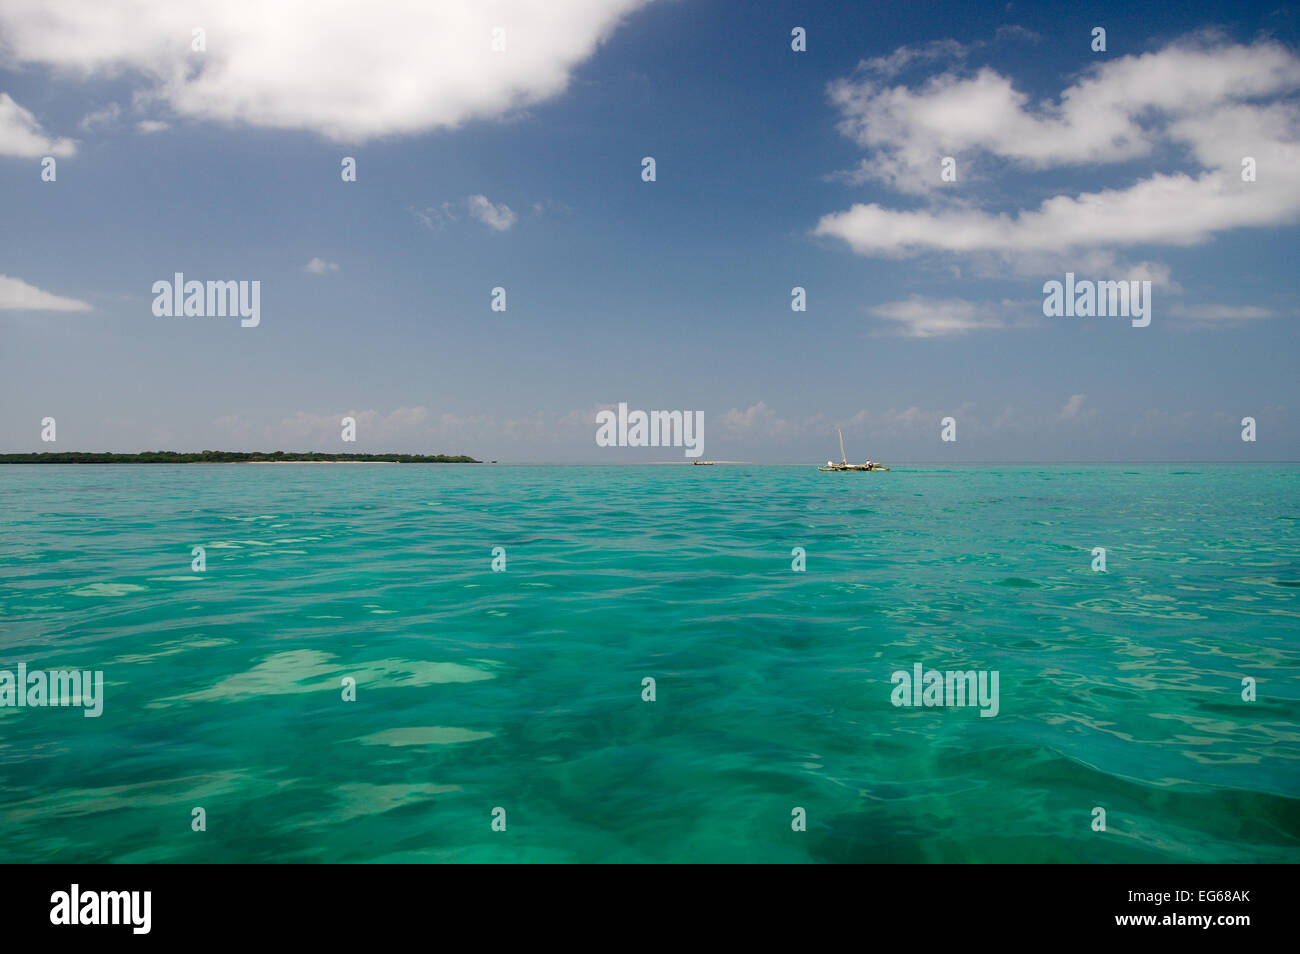 Island hopping in Zanzibar - Stock Image